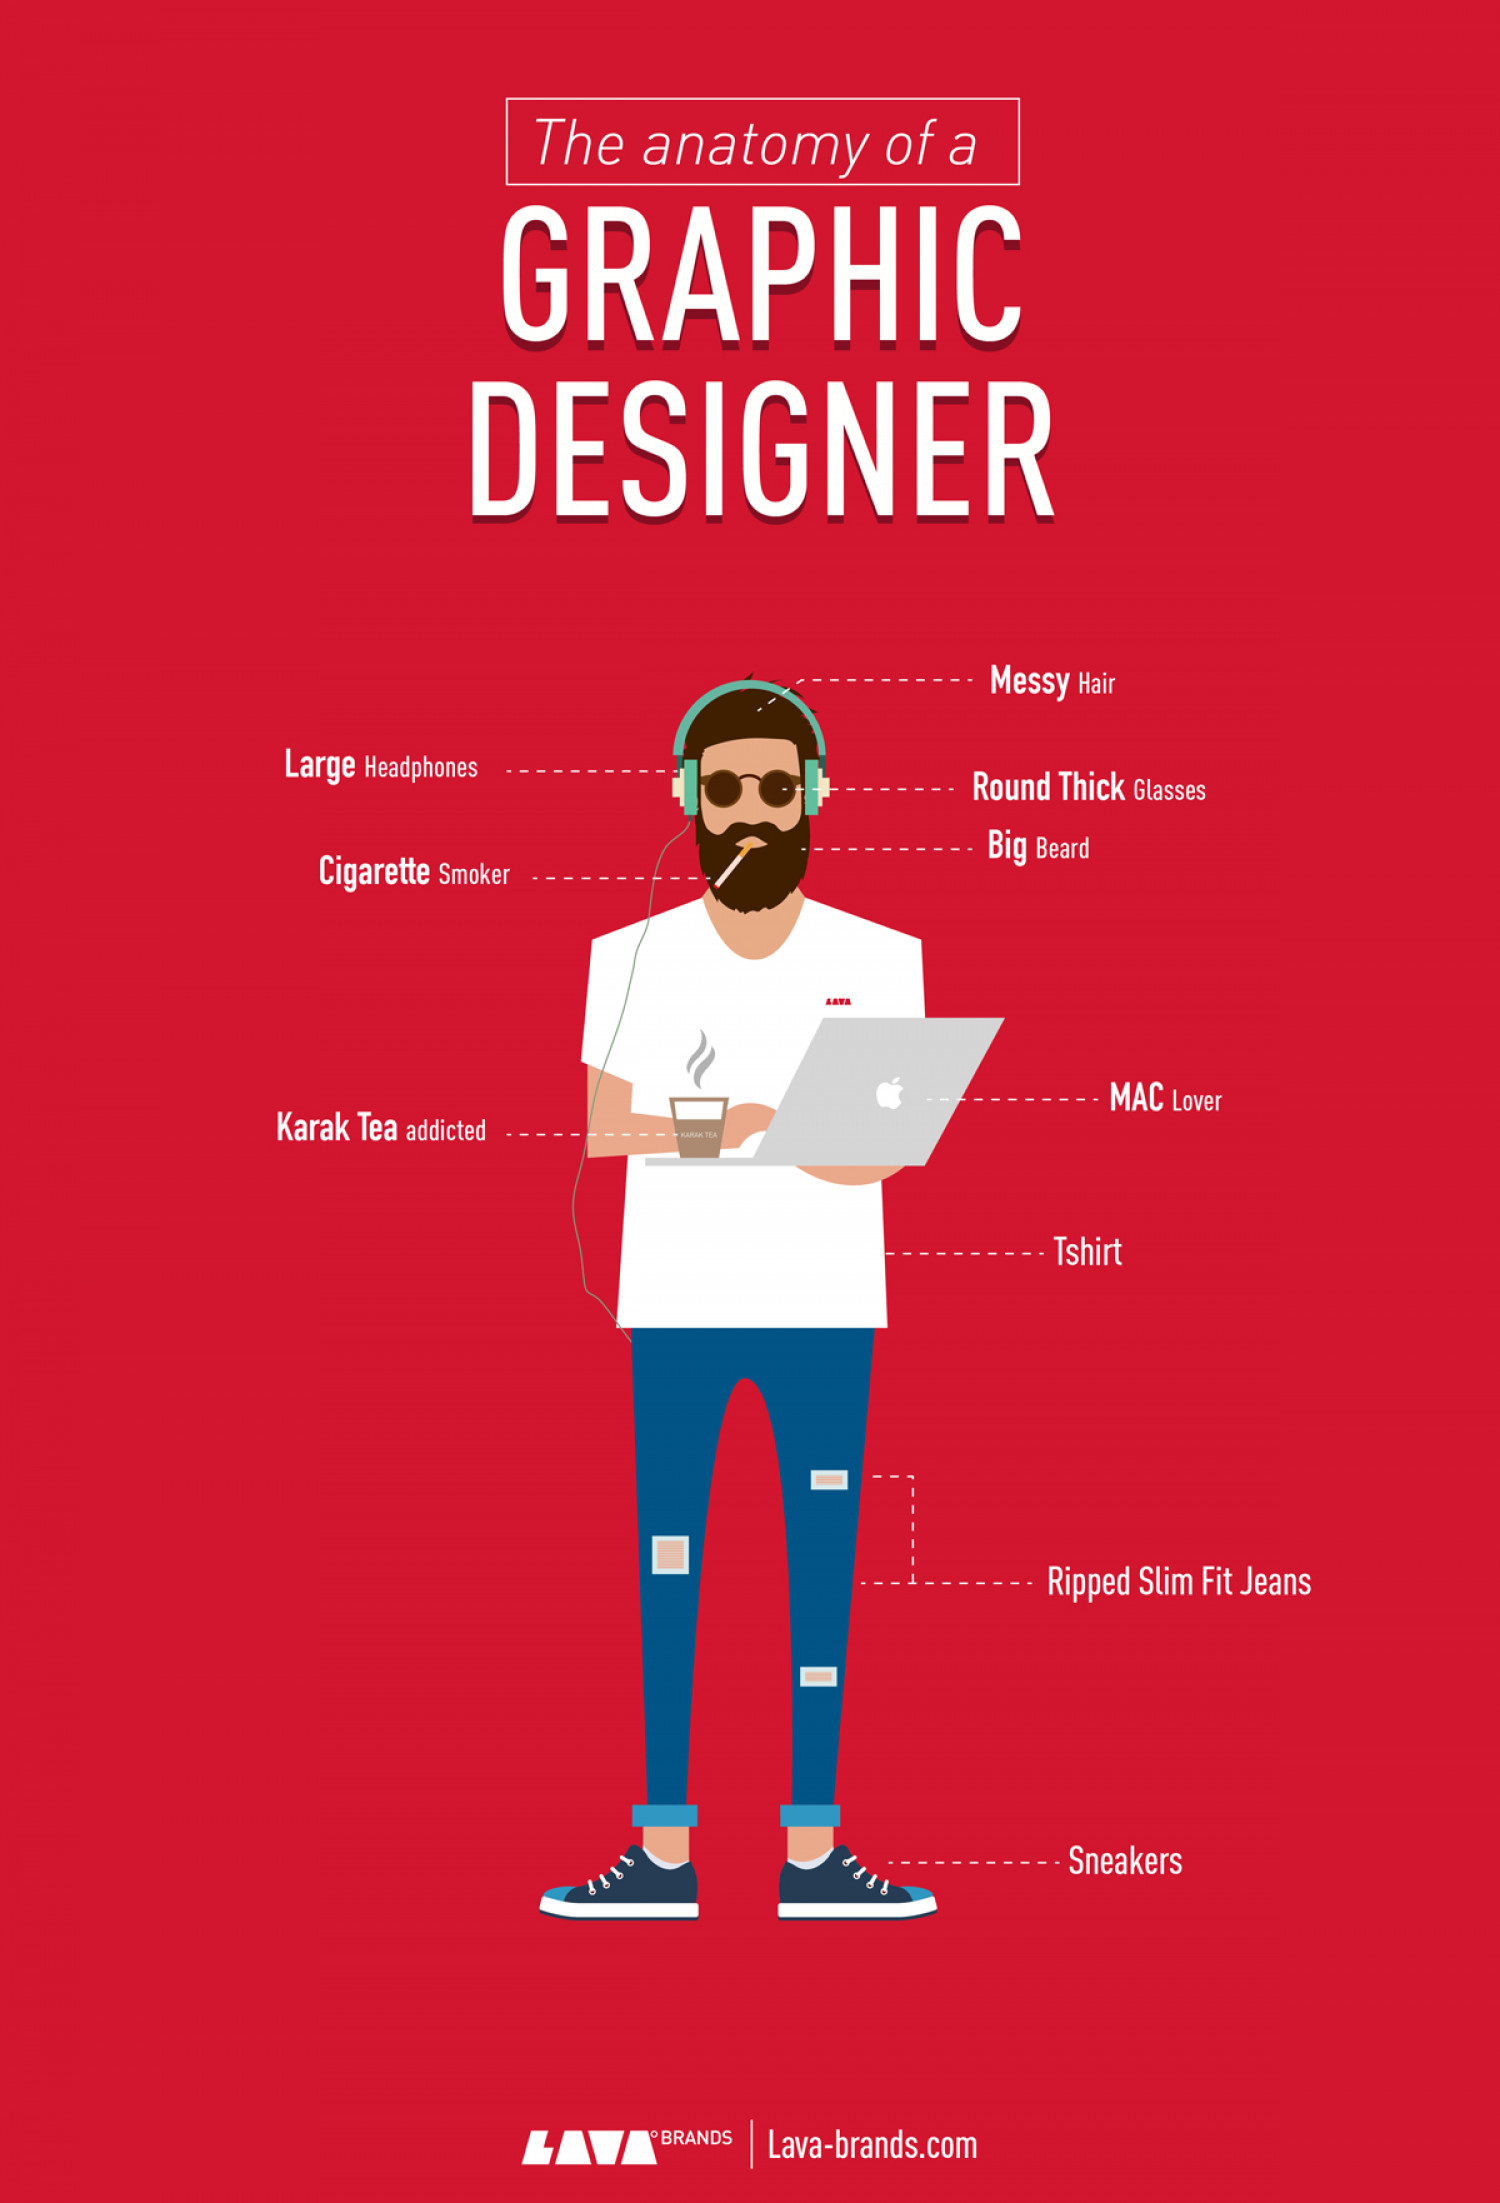 anatomy of a graphic designer | visual.ly